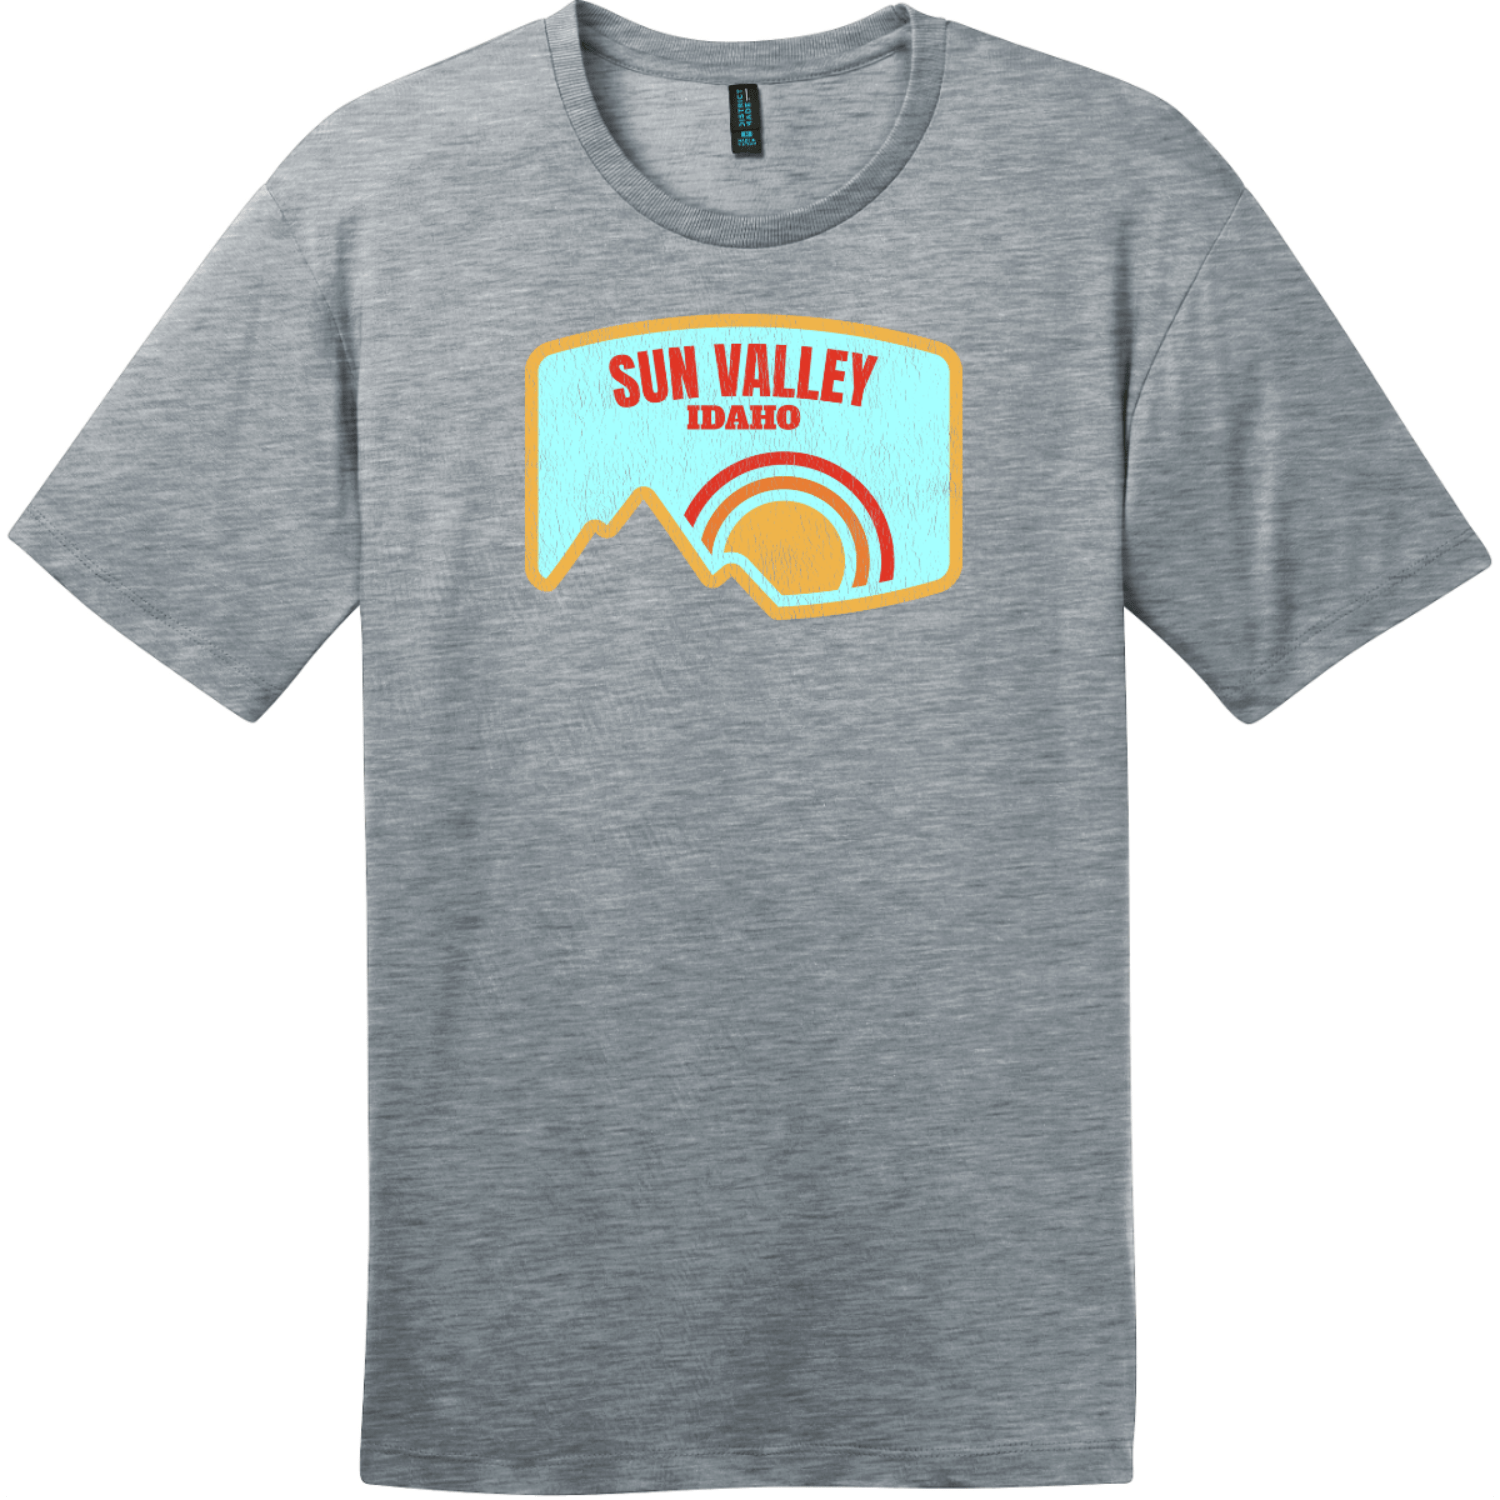 Sun Valley Idaho Mountain Vintage T-Shirt Heathered Steel District Perfect Weight Tee DT104